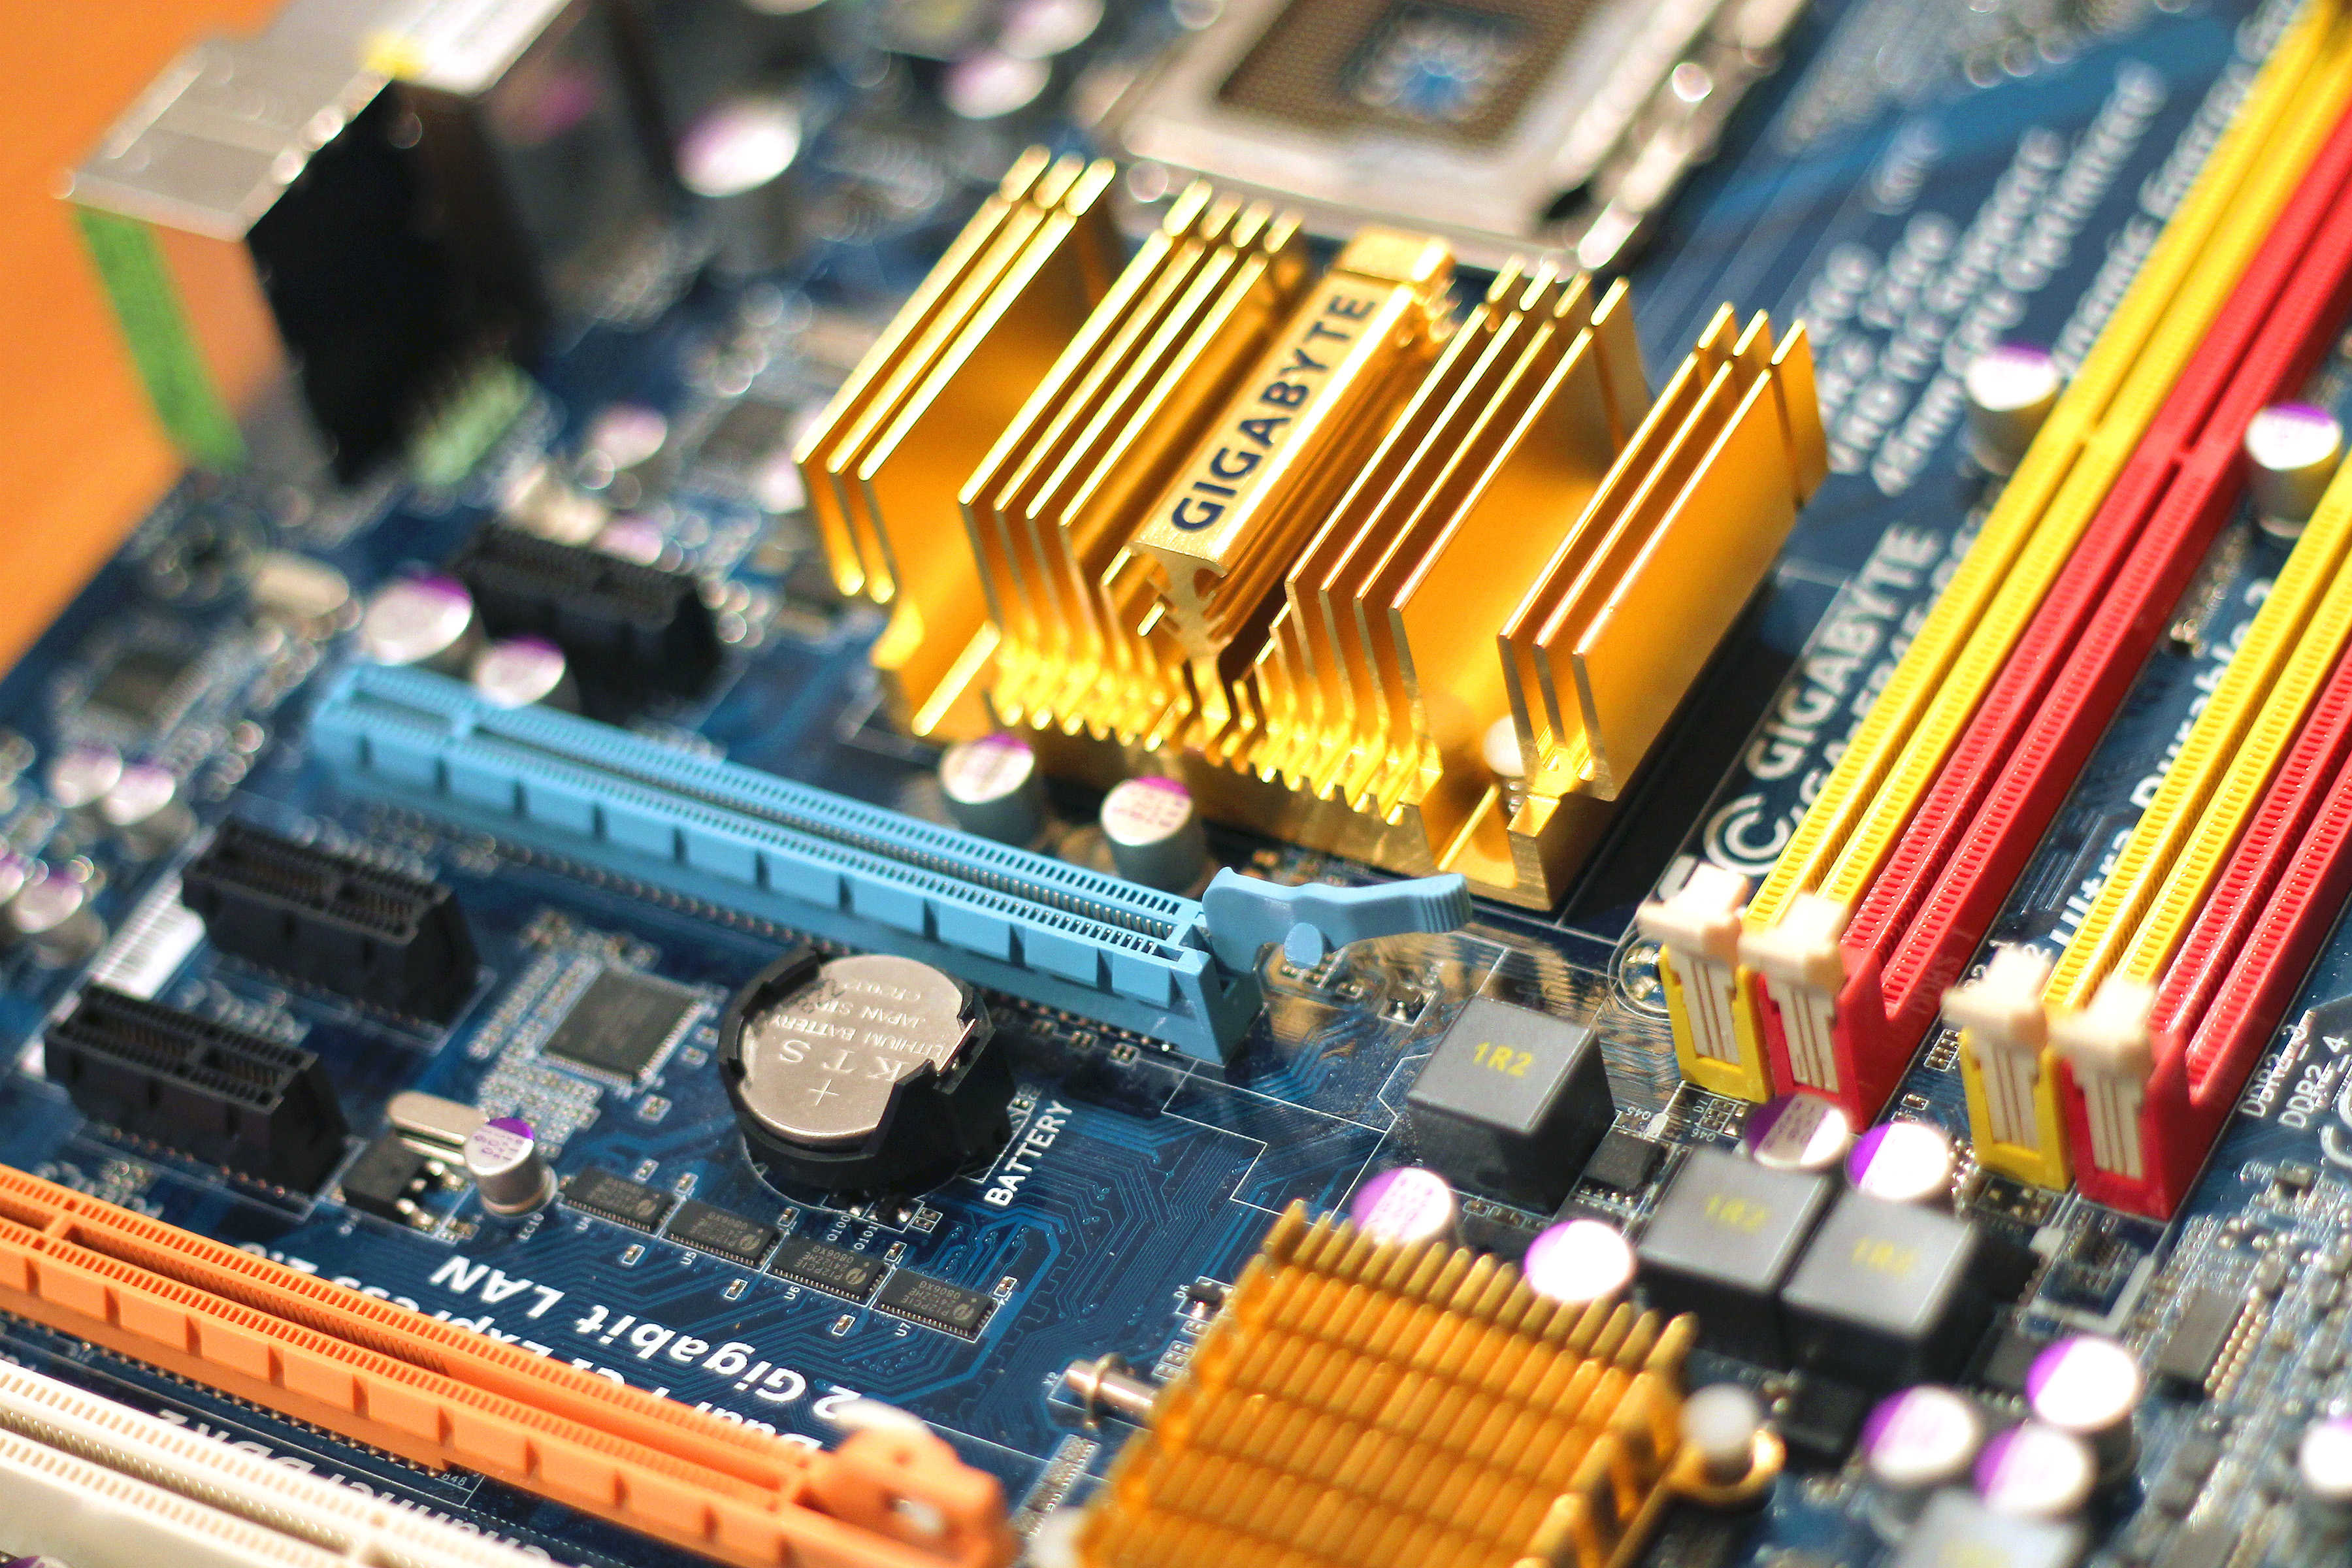 close up image of a computer system gigabyte and circuit board